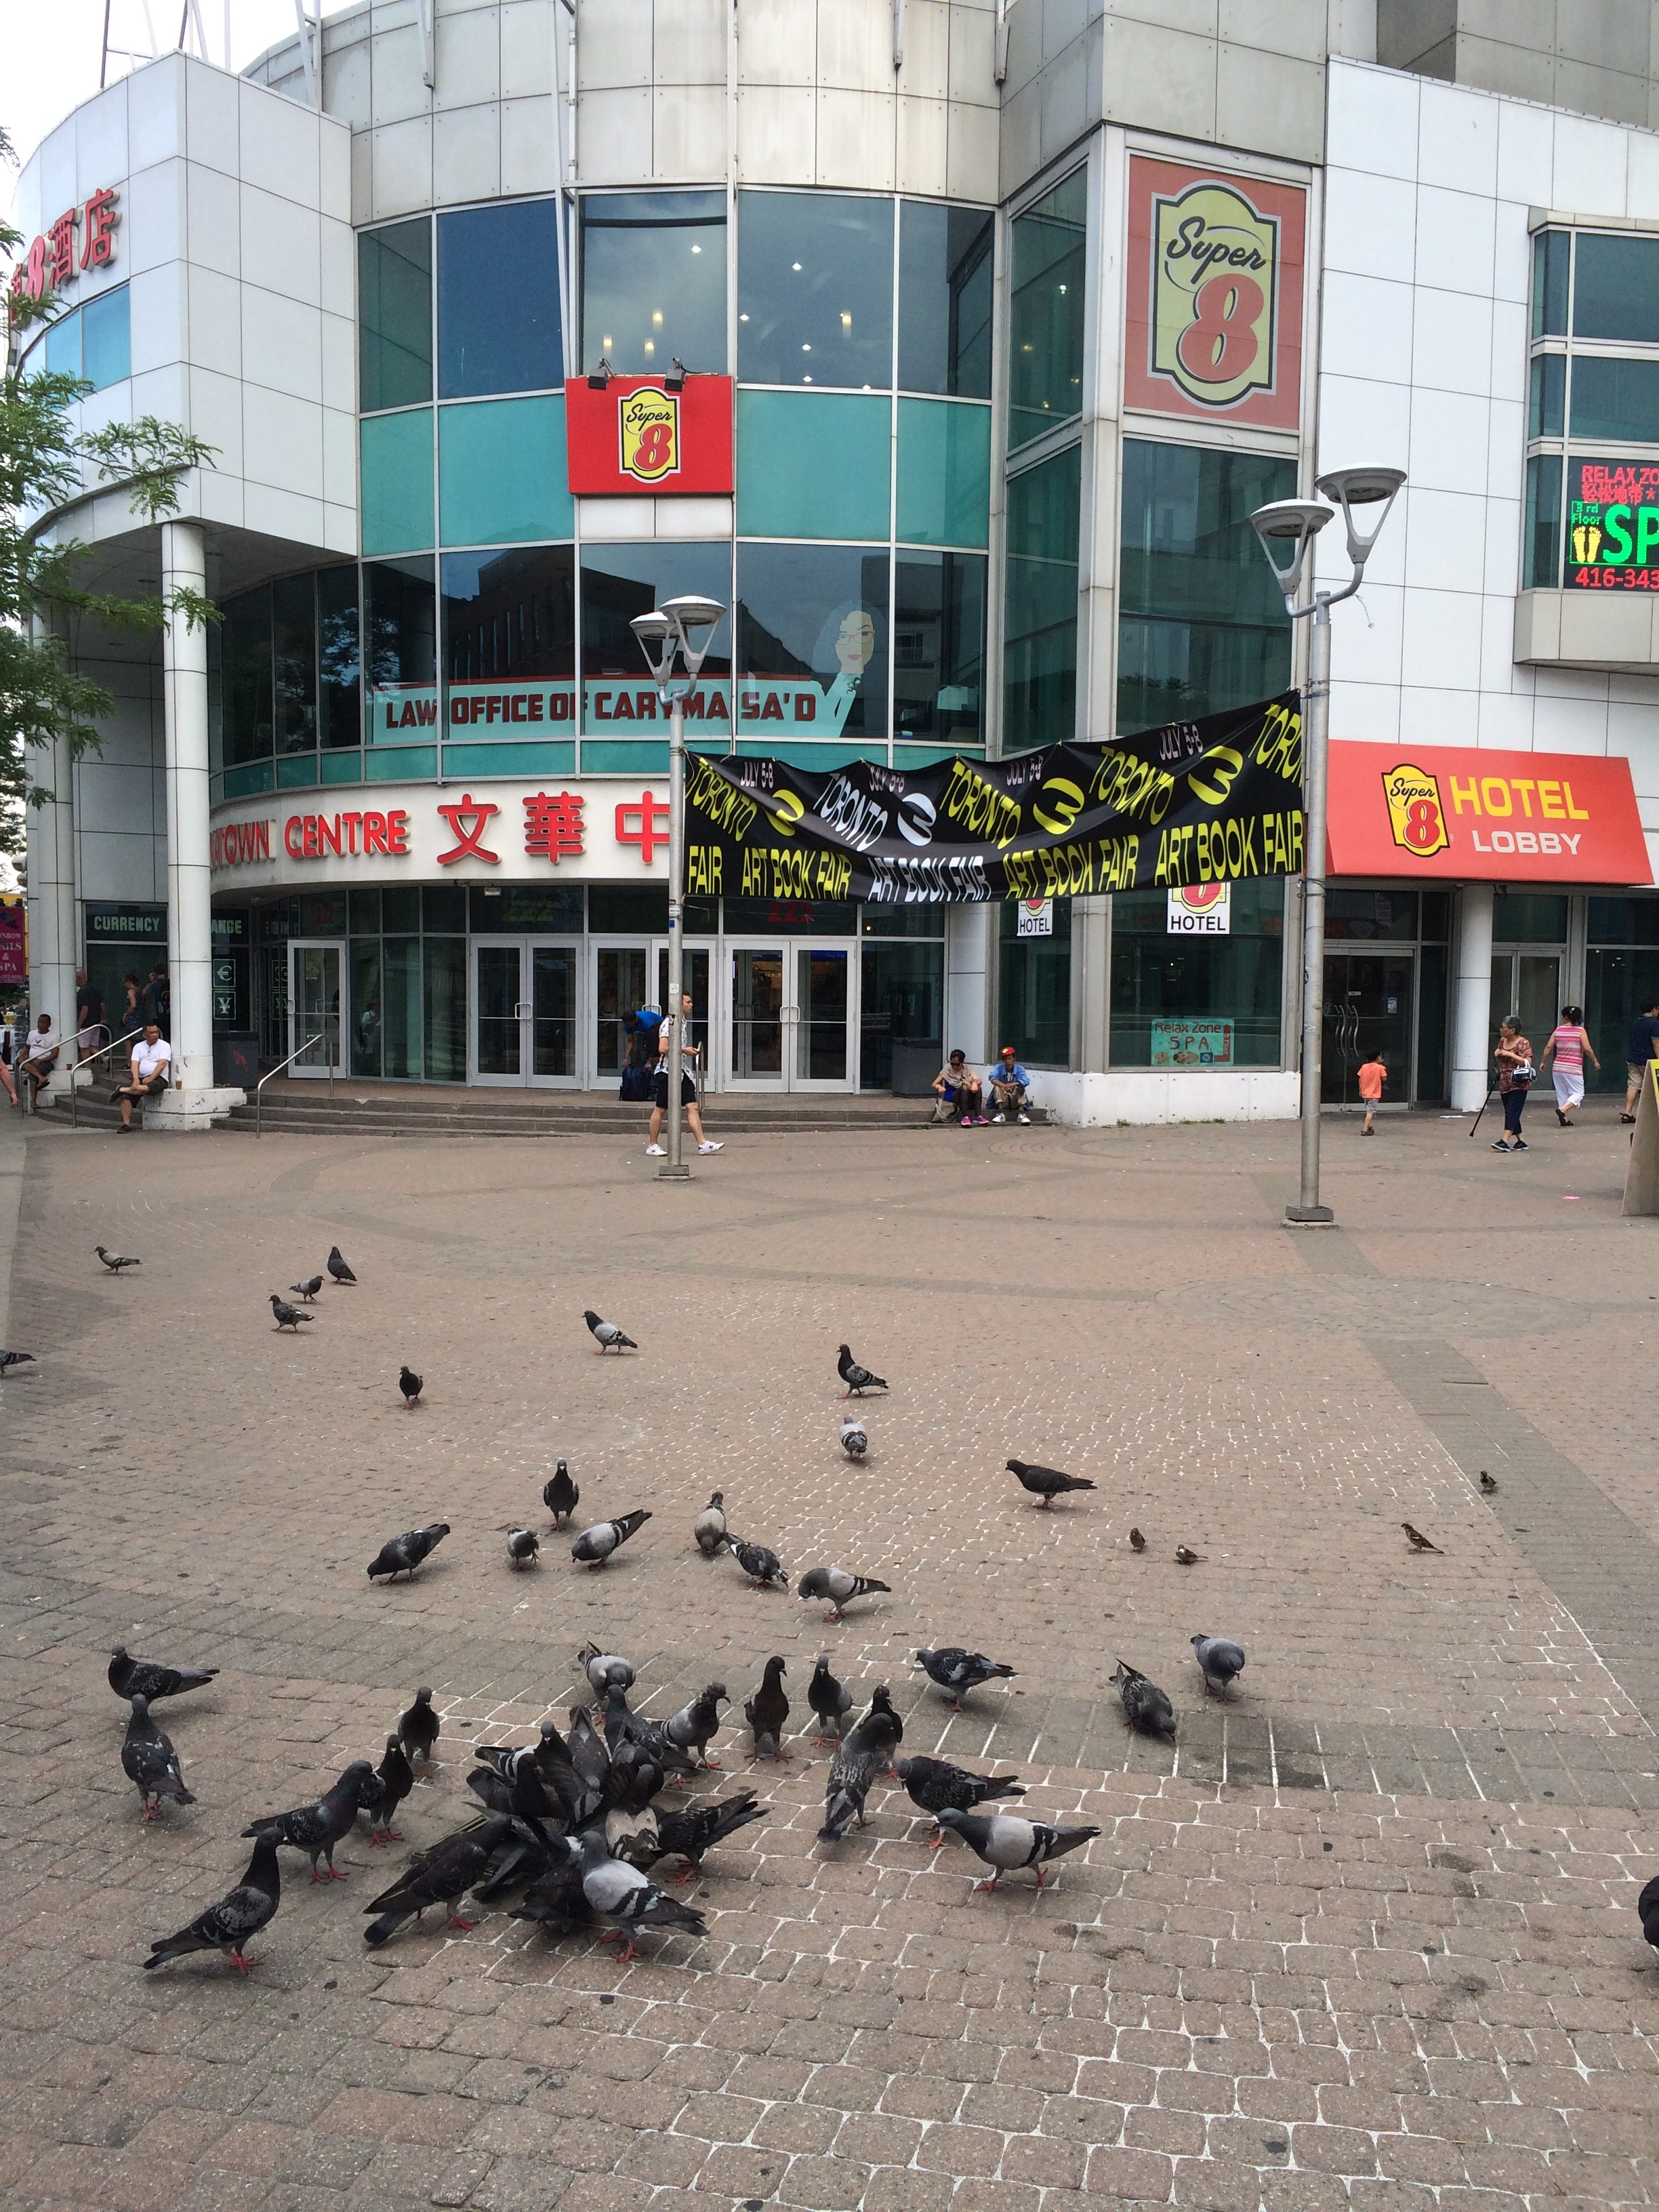 Chinatown Centre, Toronto Art Book Fair 2018 venue, is the gathering point of an important pigeon flock; pictured here are some of its members.